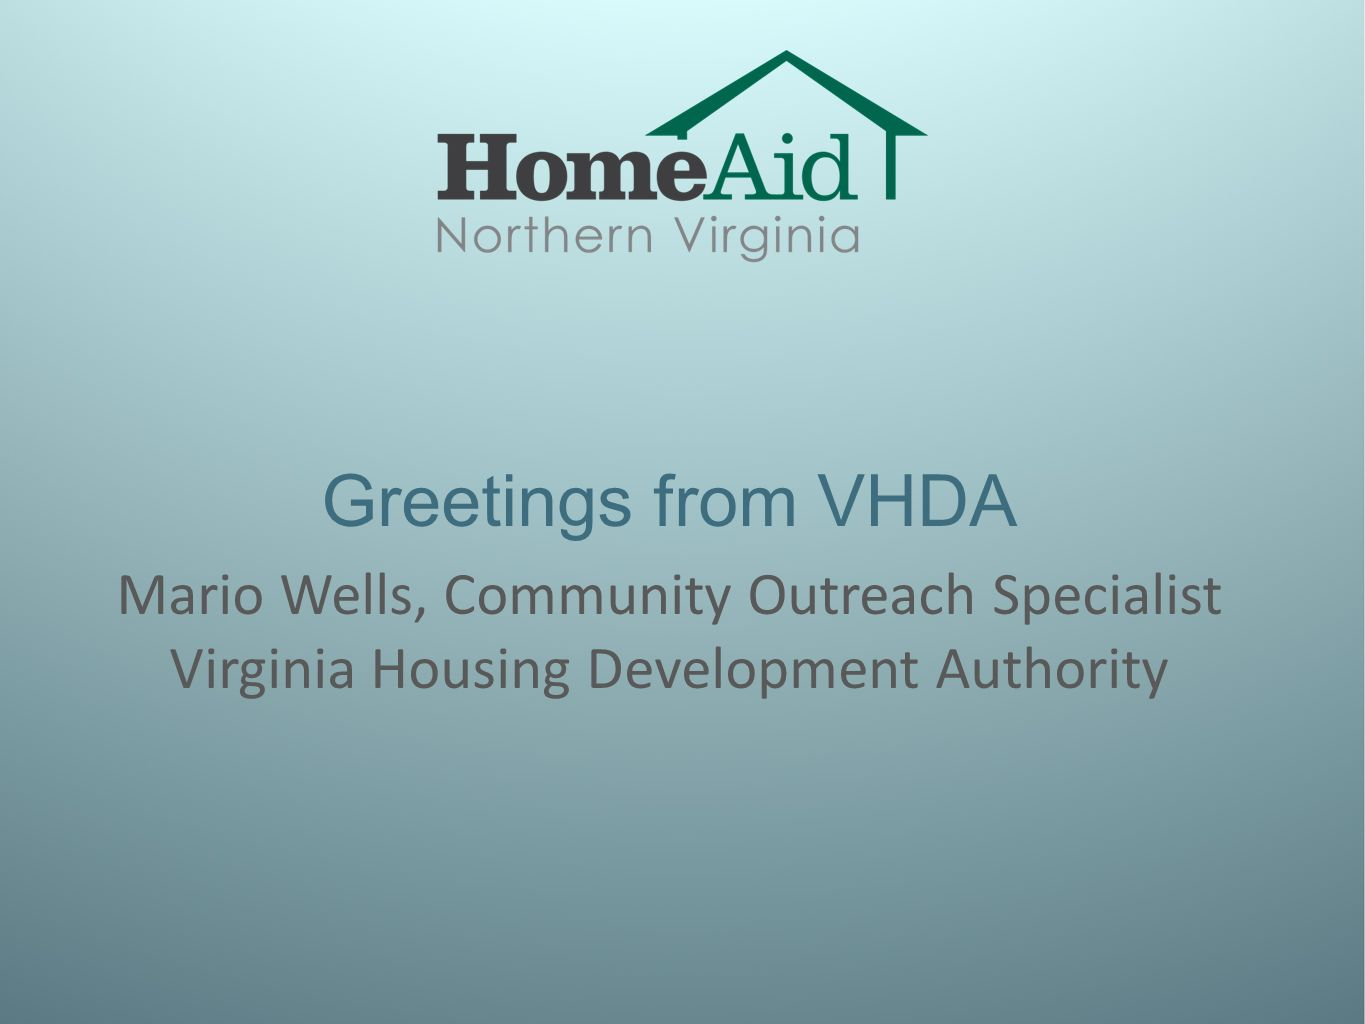 Welcome housing forum collective impact meaningful partnerships 5 greetings from vhda mario wells community outreach specialist virginia housing development authority kristyandbryce Images